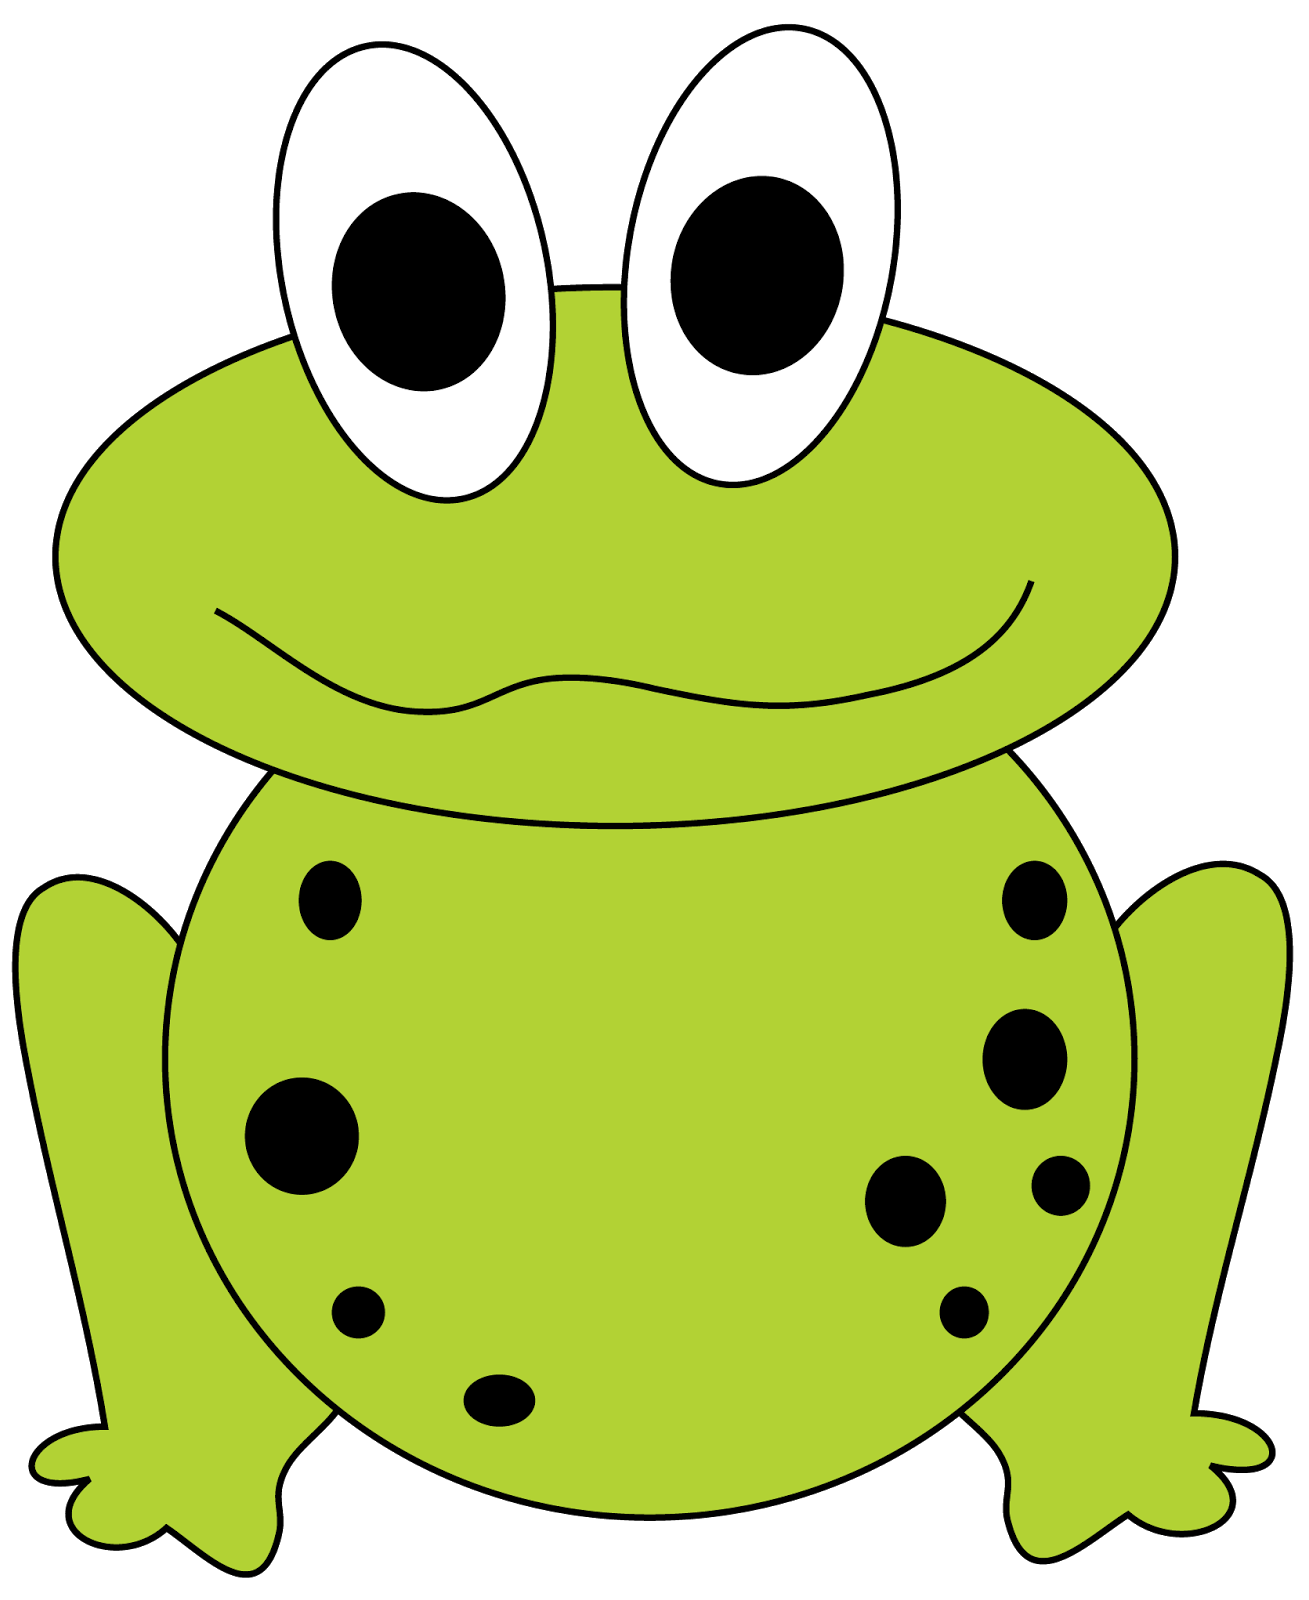 frog-pictures-for-kids-nice